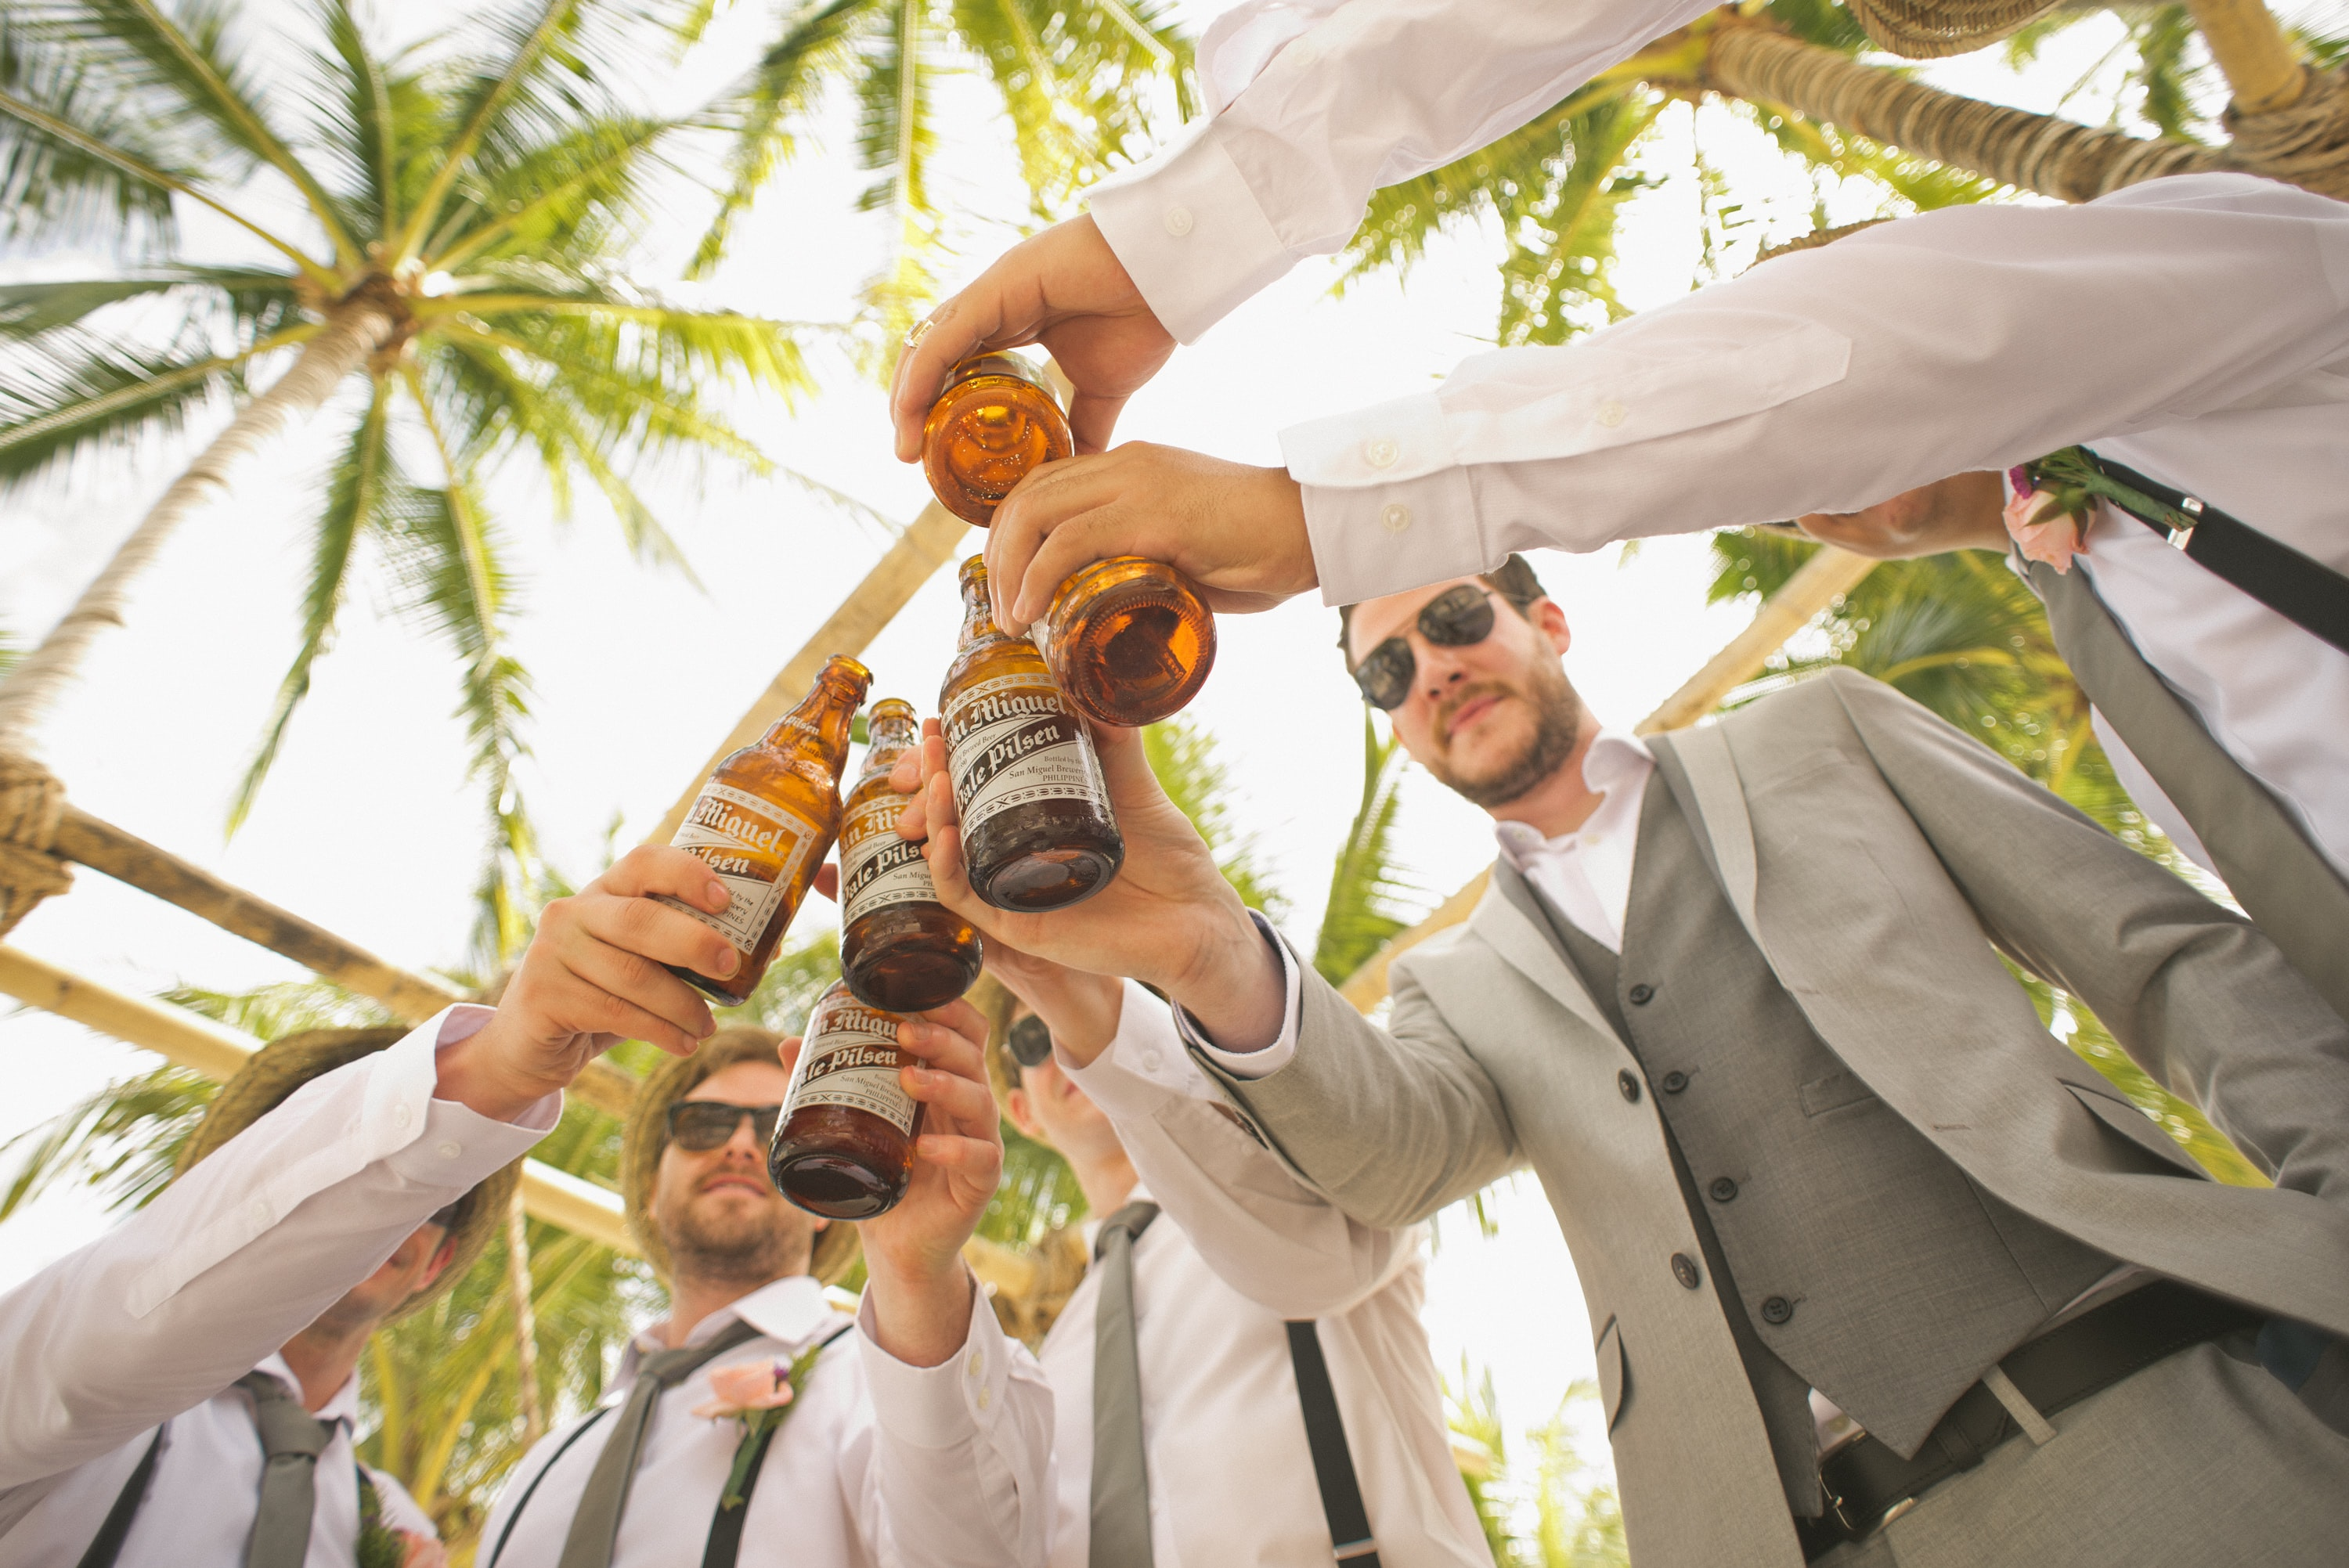 low angle of men holding beer bottles and having a toast